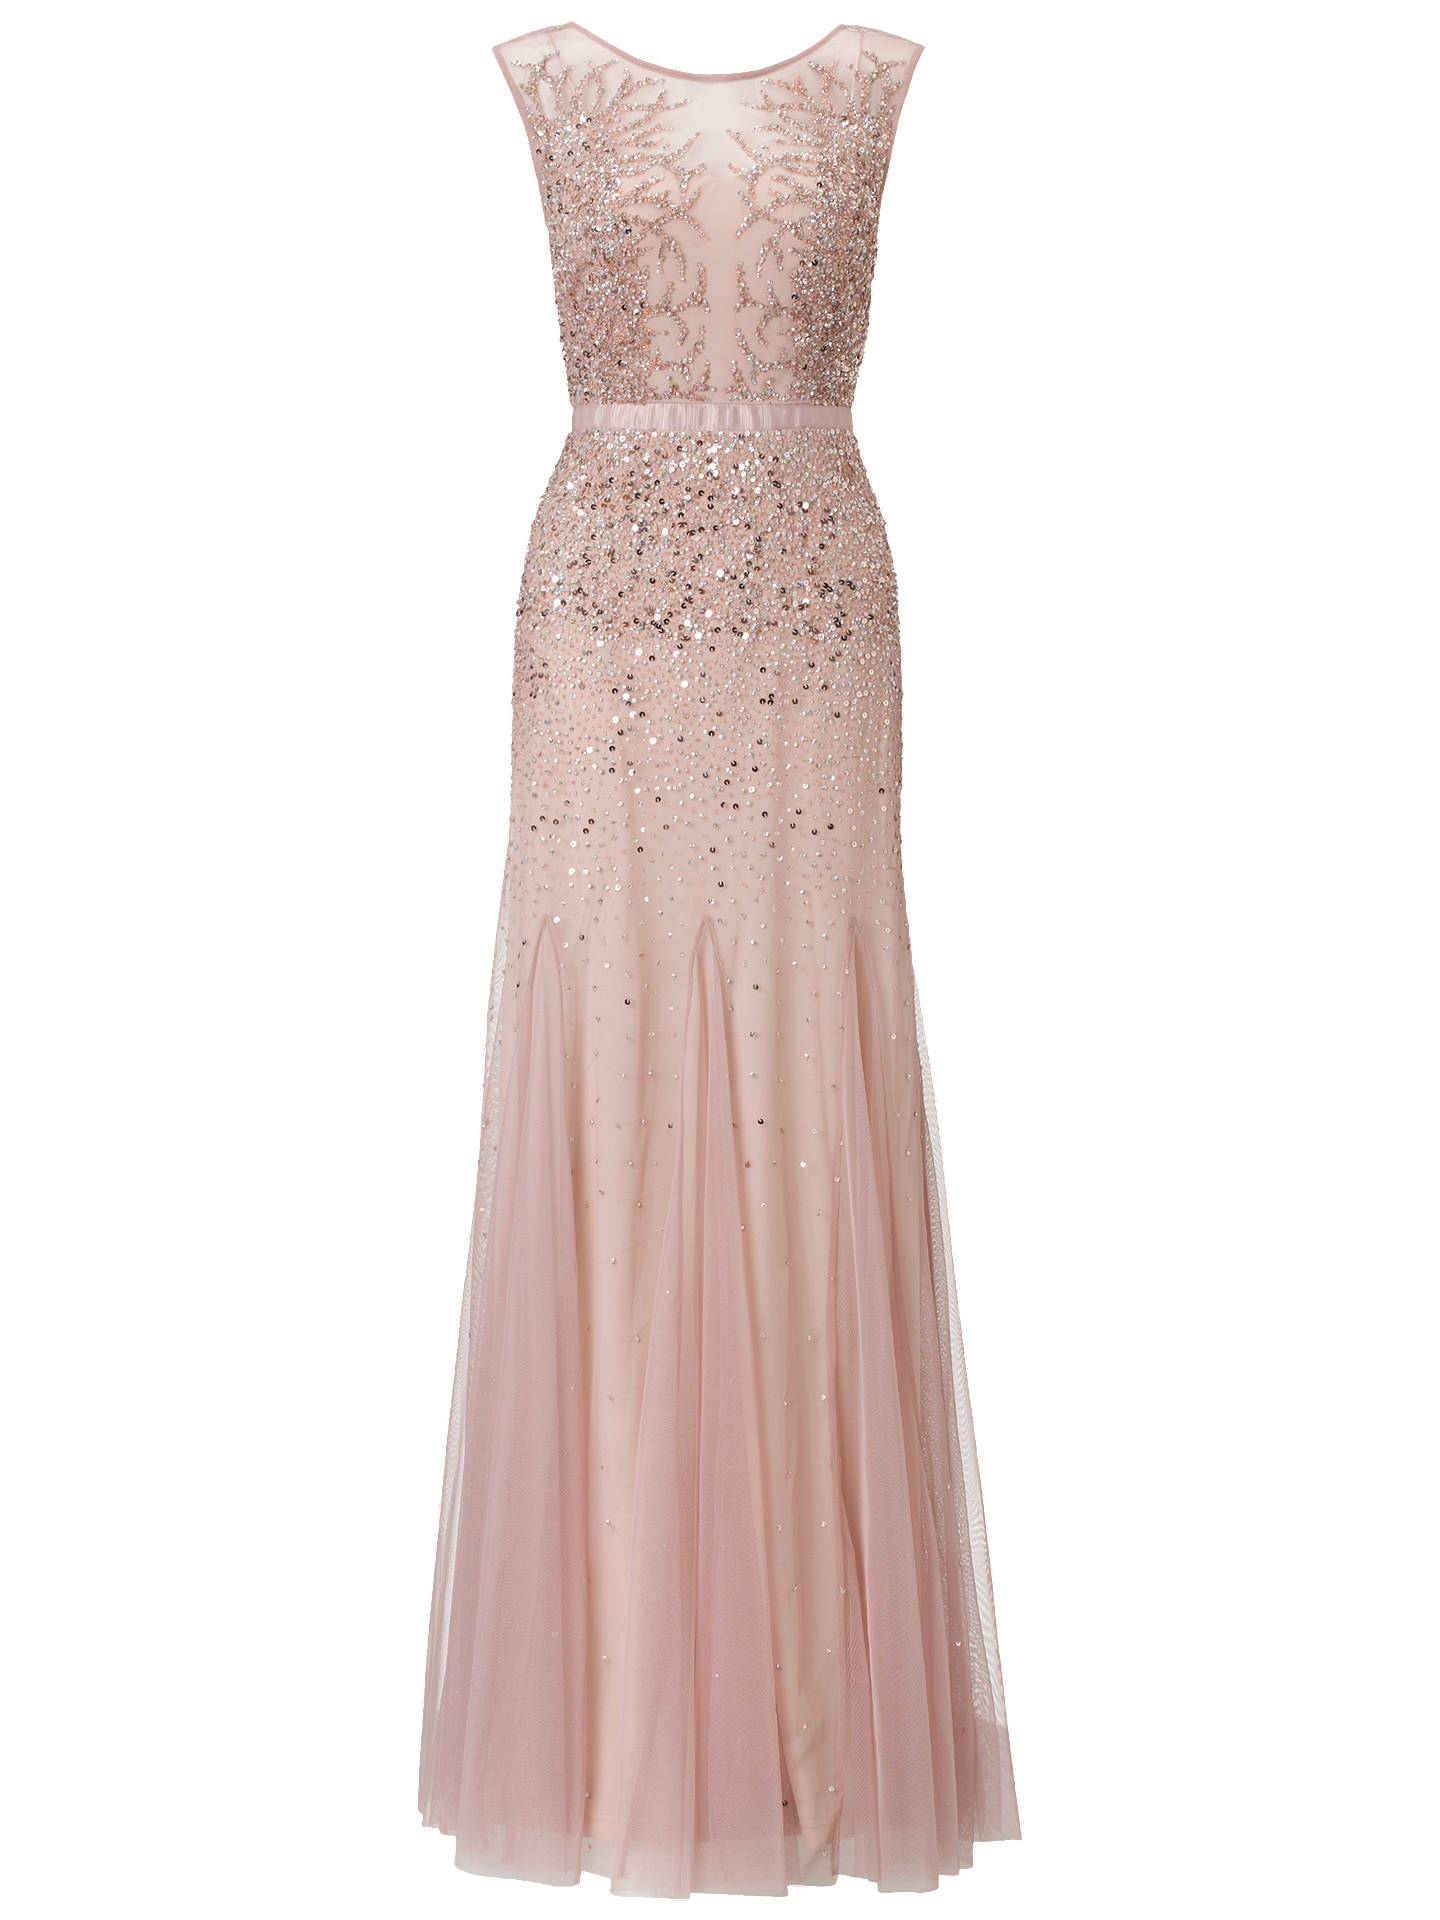 Adrianna Papell Wedding Long Beaded Gown, Blush at John Lewis & Partners